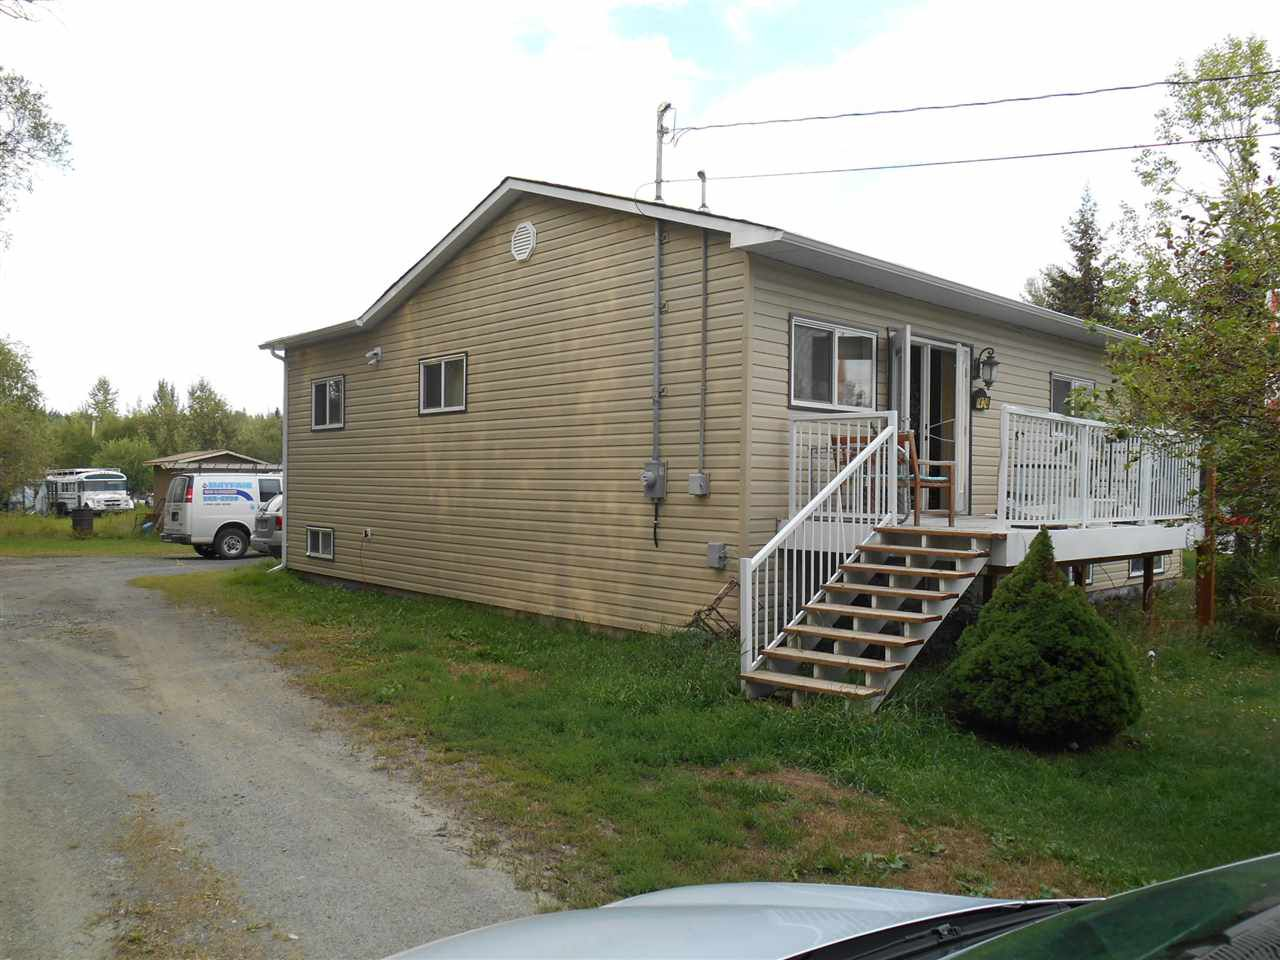 Main Photo: 7424 GISCOME Road in Prince George: North Blackburn House for sale (PG City South East (Zone 75))  : MLS®# R2041977